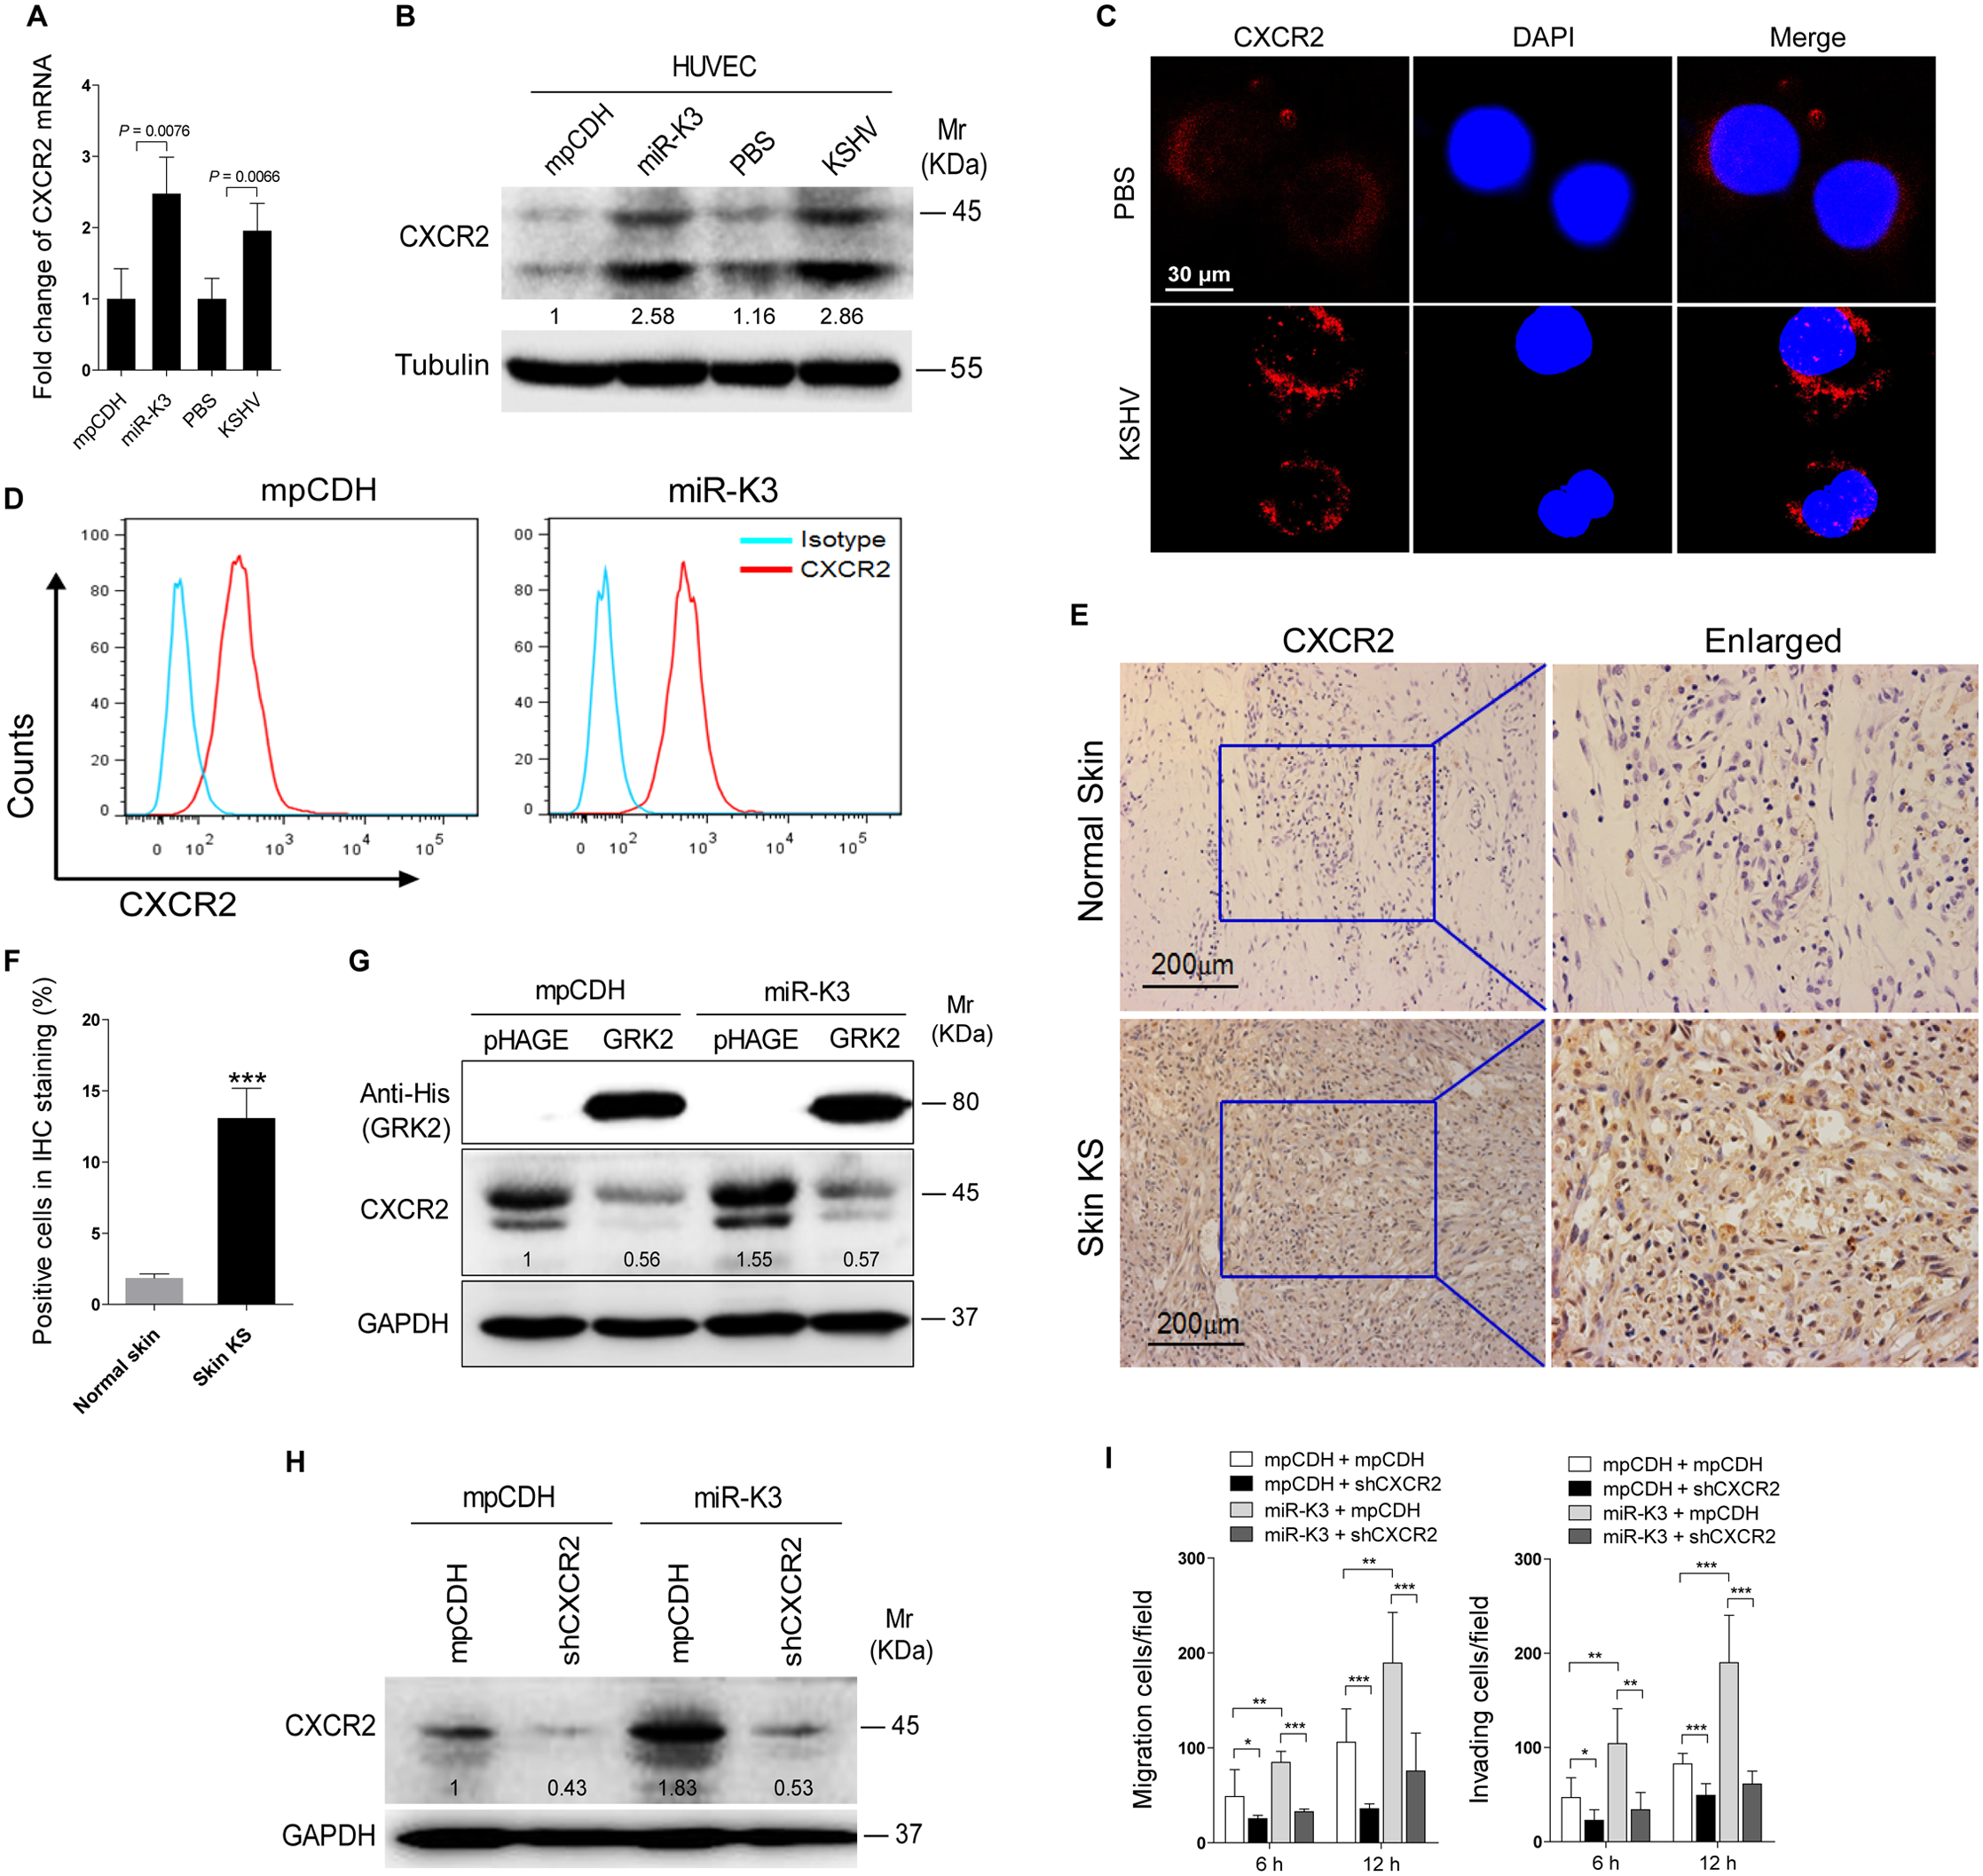 Activation of CXCR2, which was negatively regulated by GRK2, contributes to miR-K3-induced endothelial cell migration and invasion.